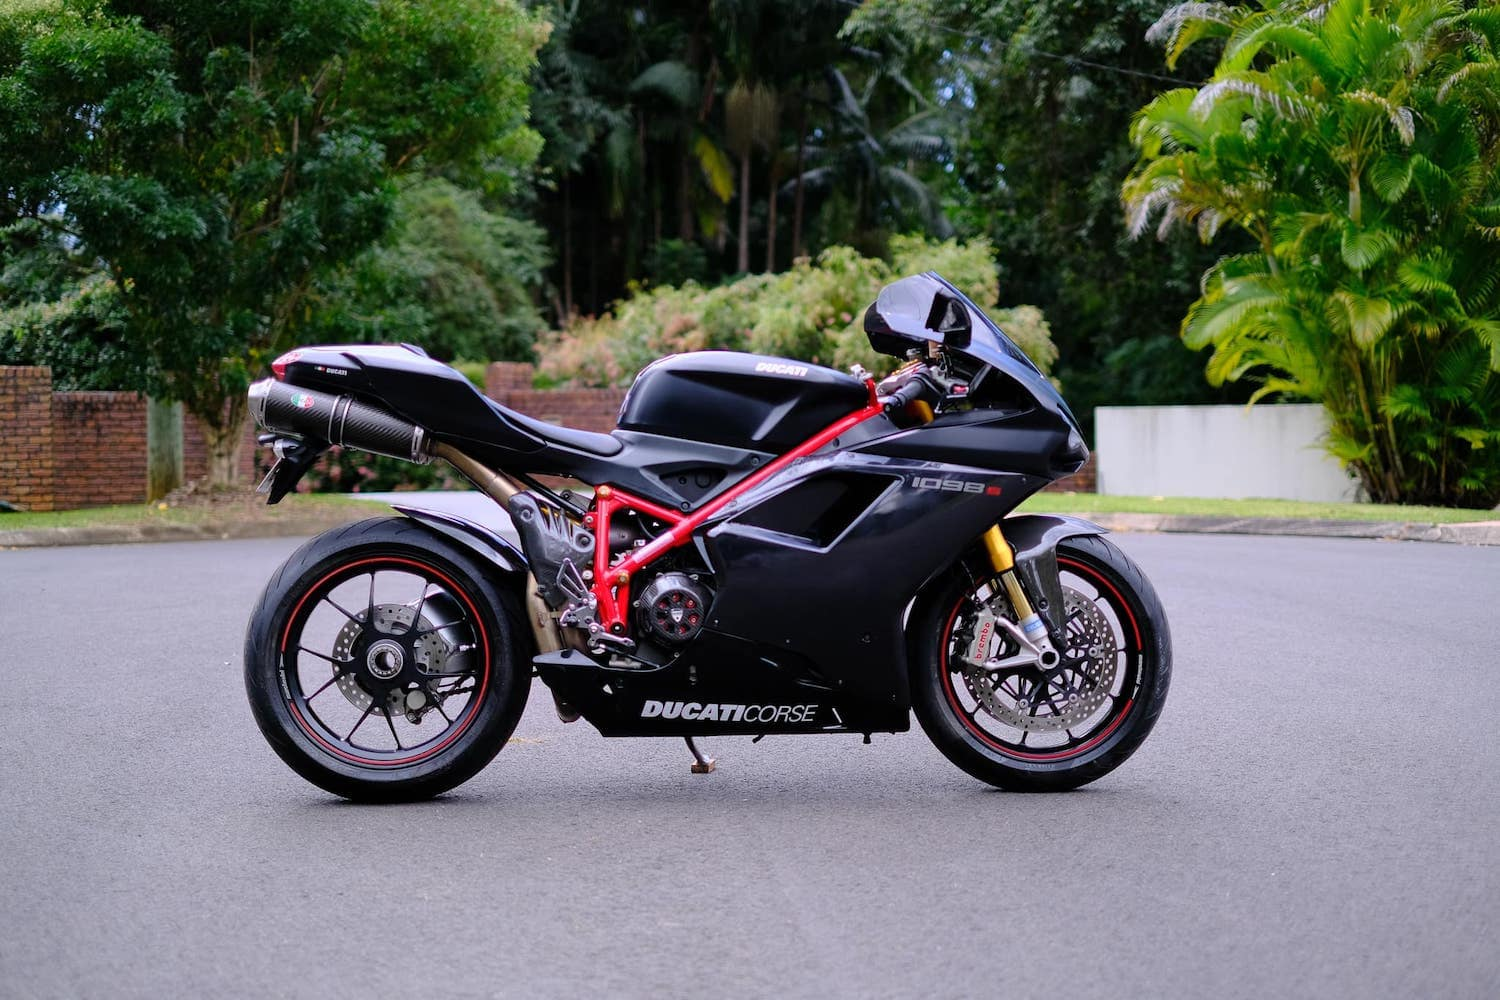 Black ducati 1098S, side on. single-sided swing-arm